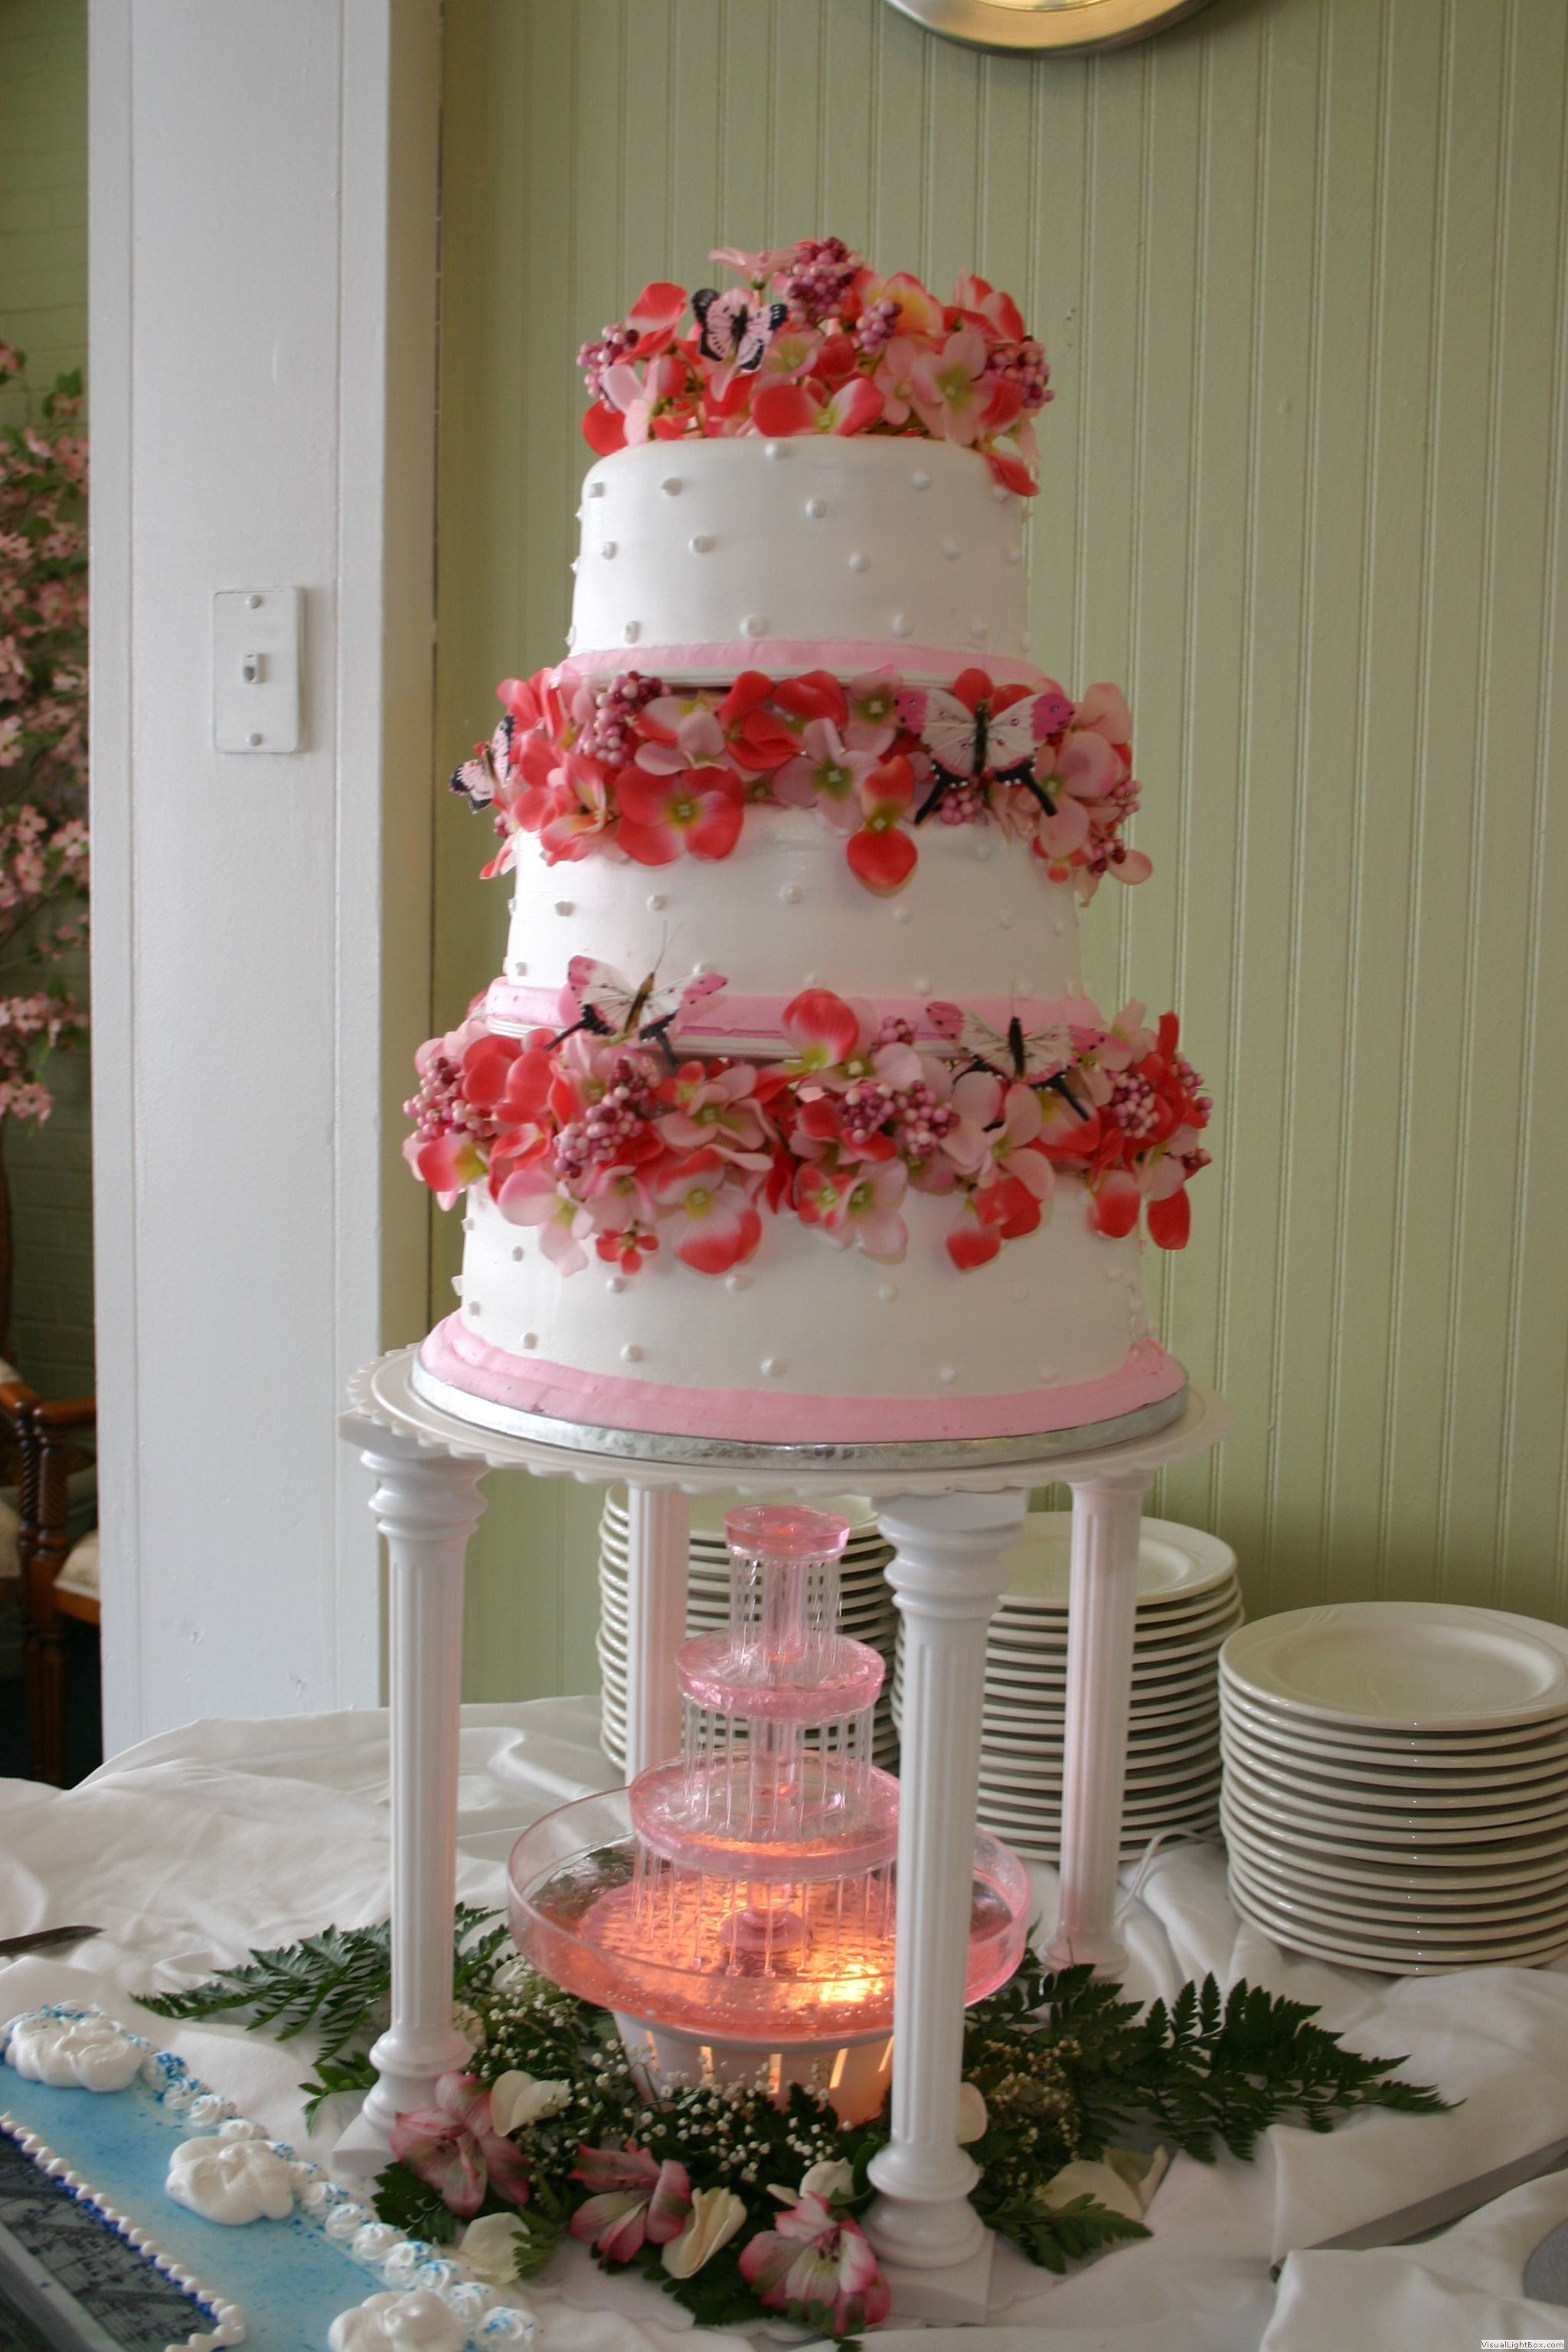 At Smoky Mountain Cakes we offer a wide variety of beautiful